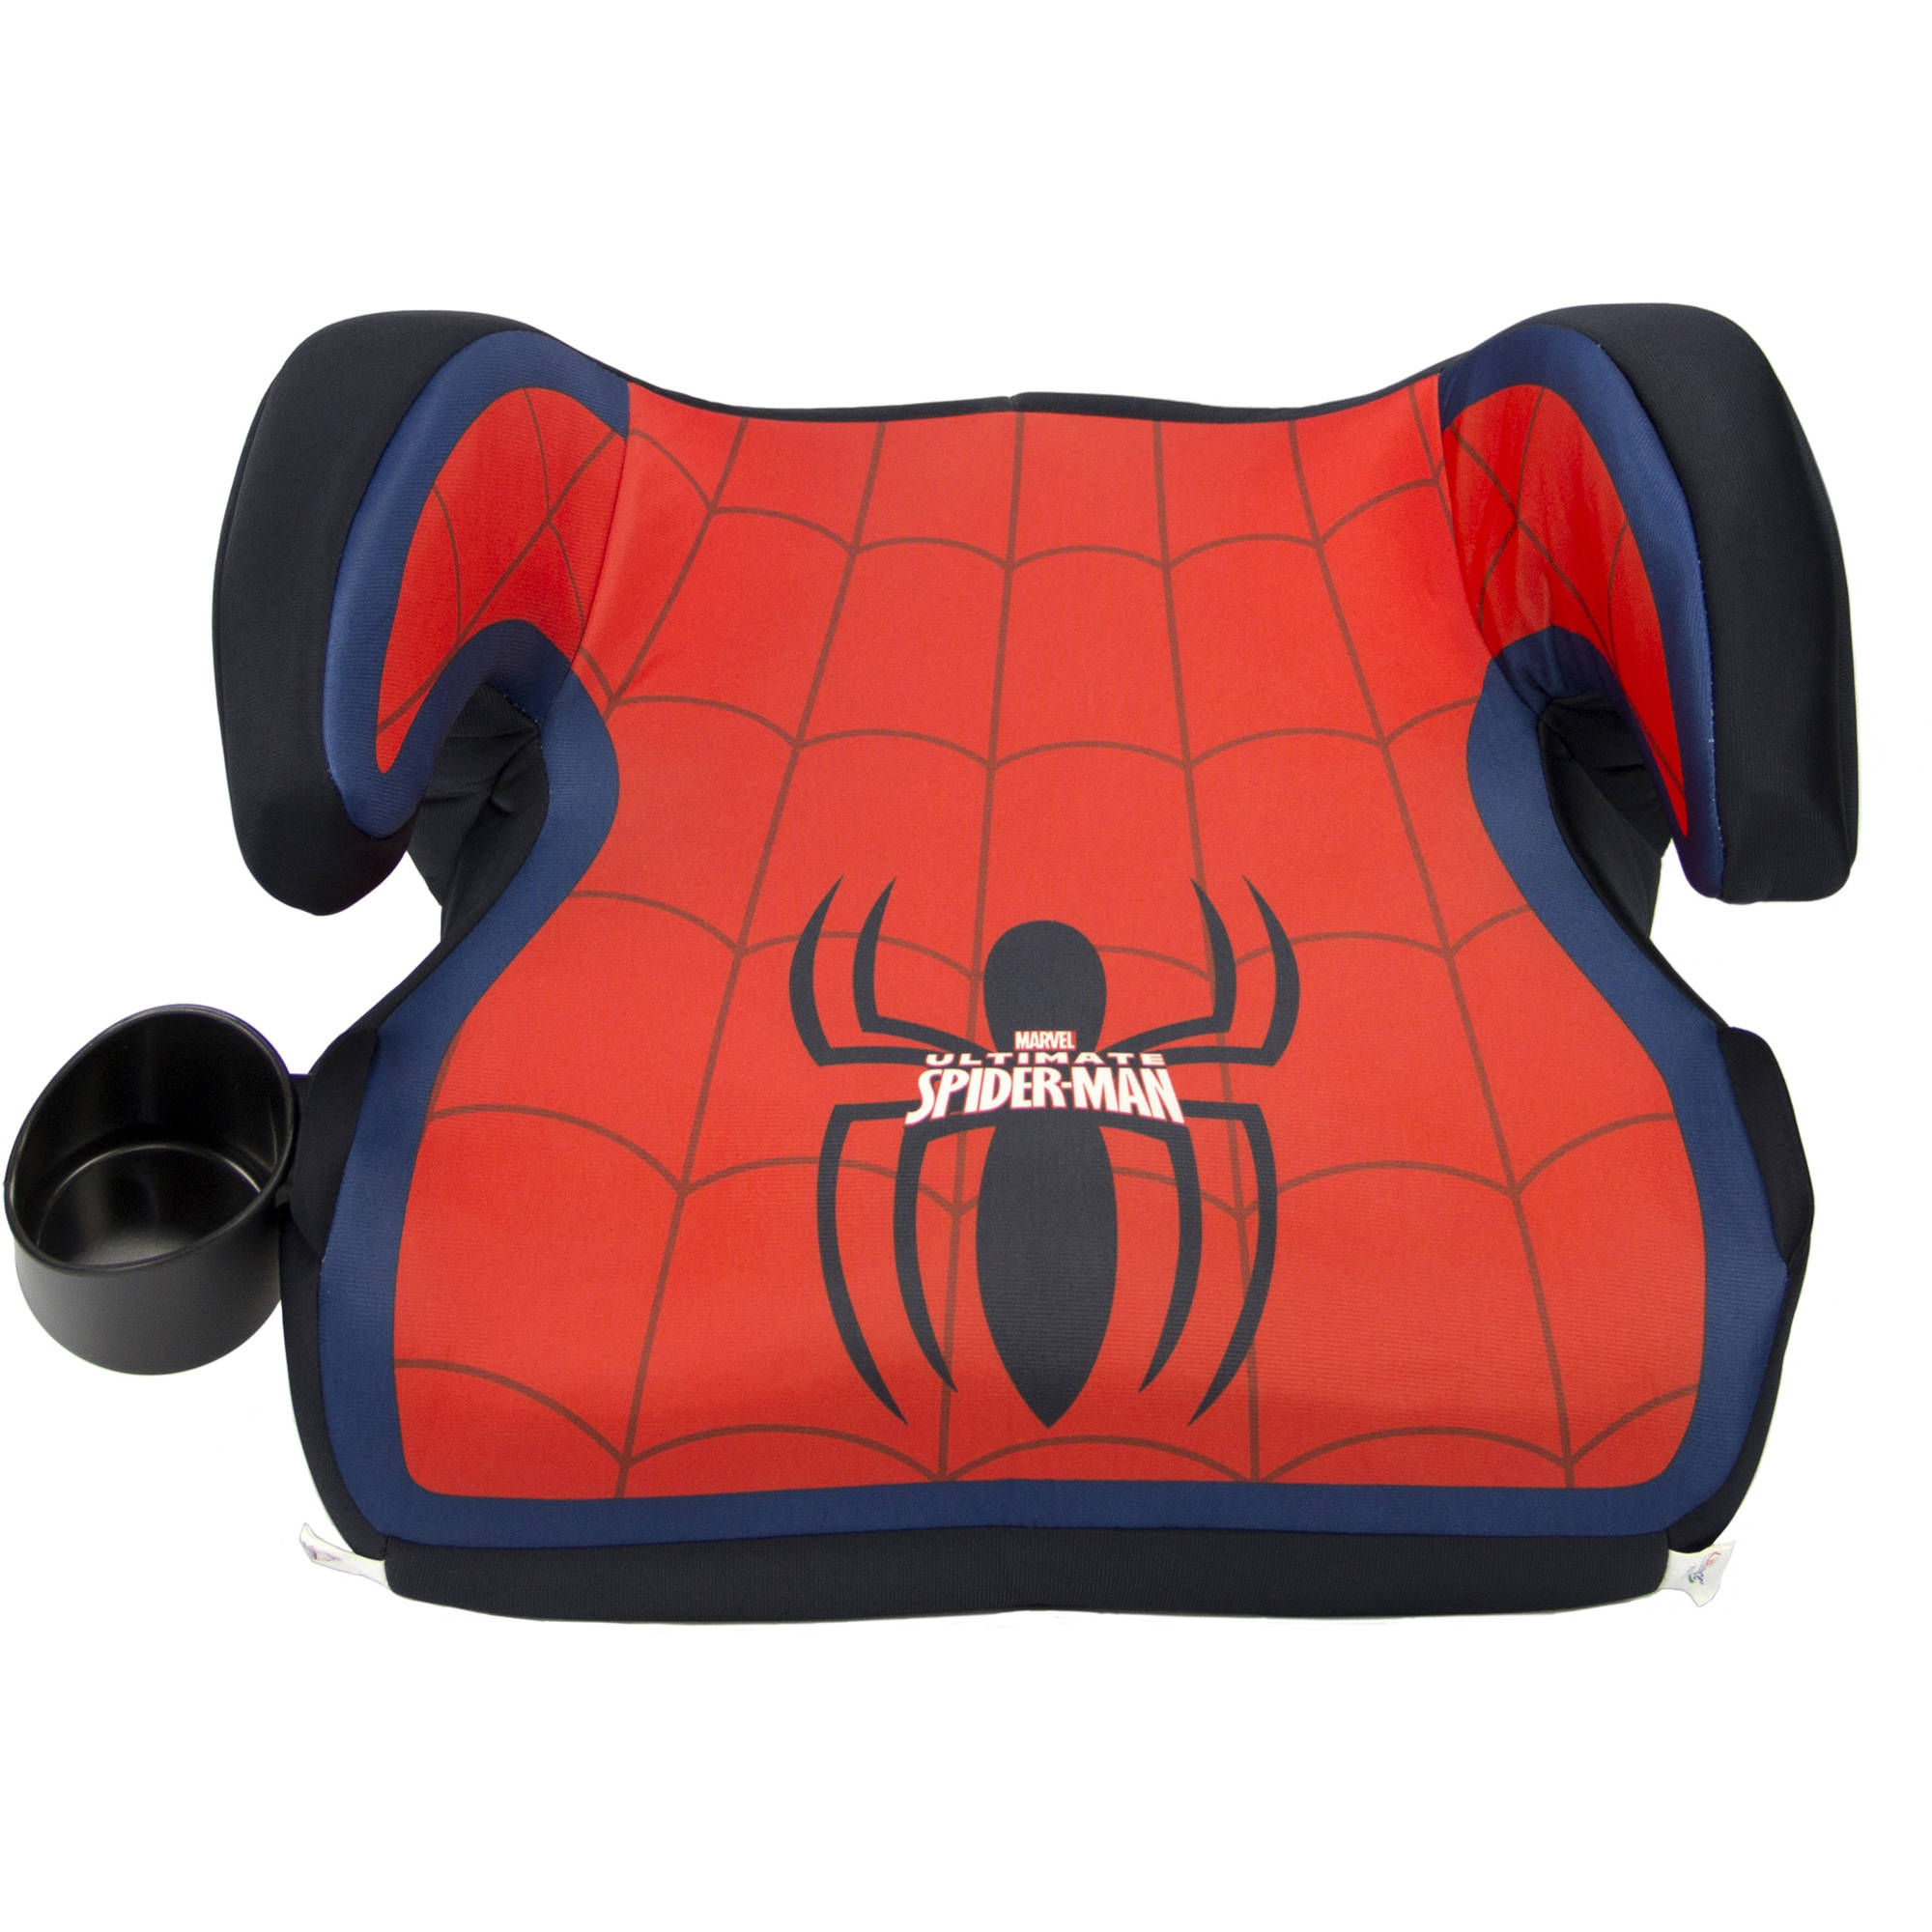 KidsEmbrace Fun - Ride Backless Booster Car Seat, Ultimate Spider - Man